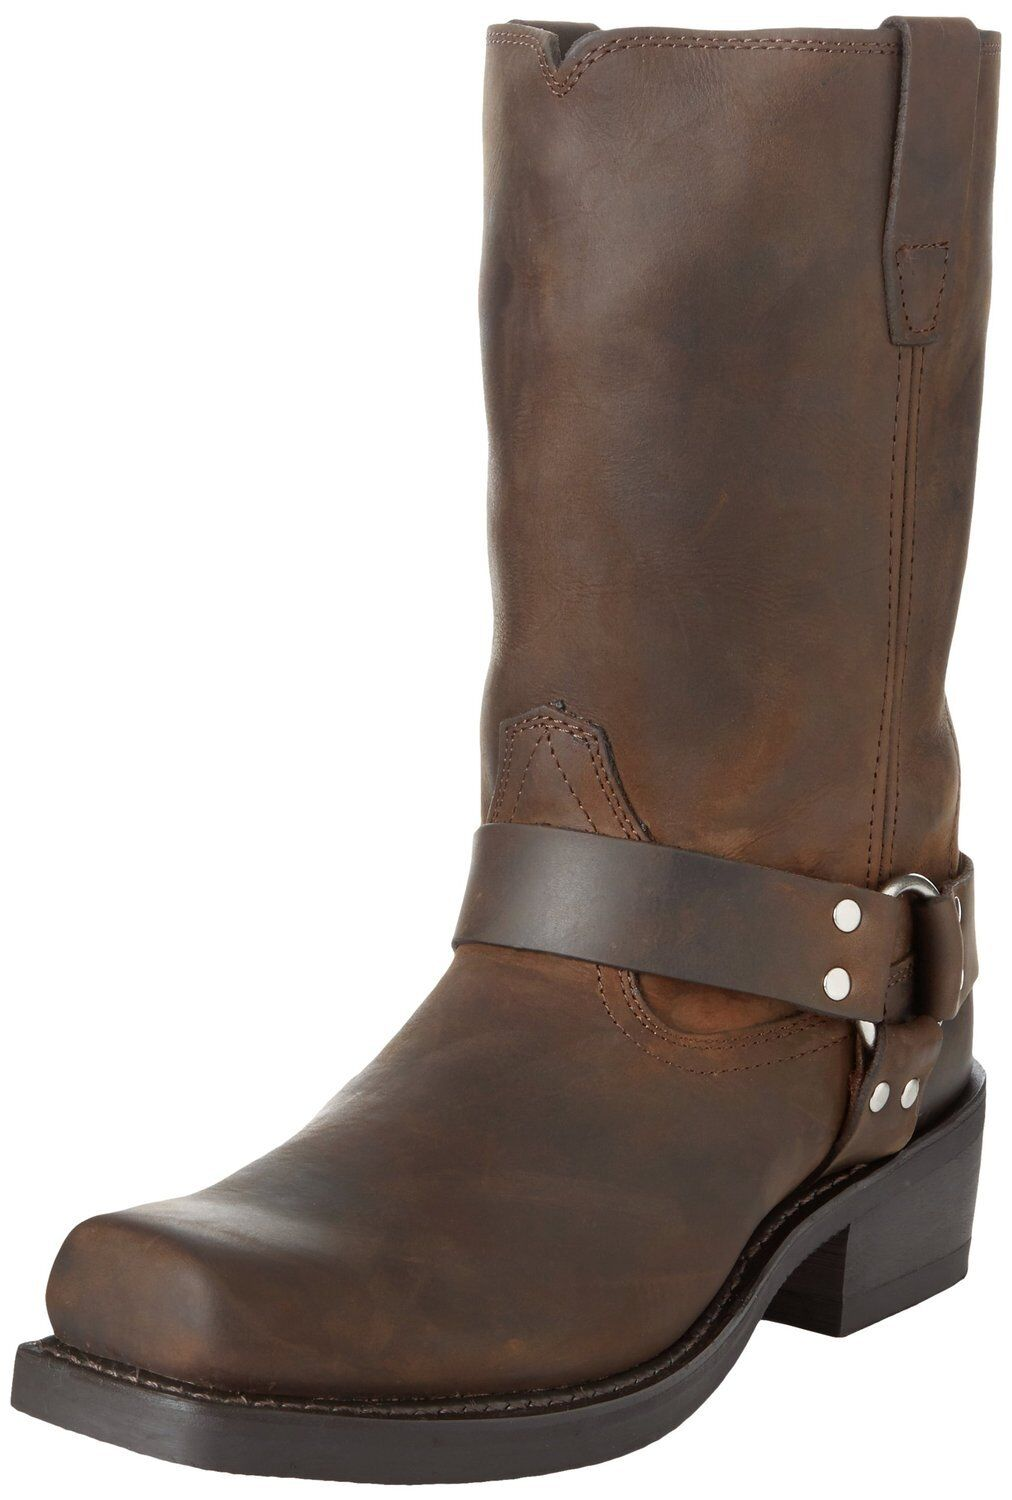 Durango Mens Tall Motorcycle Harness Boot Distressed Brown Leather DB594 EE Wide